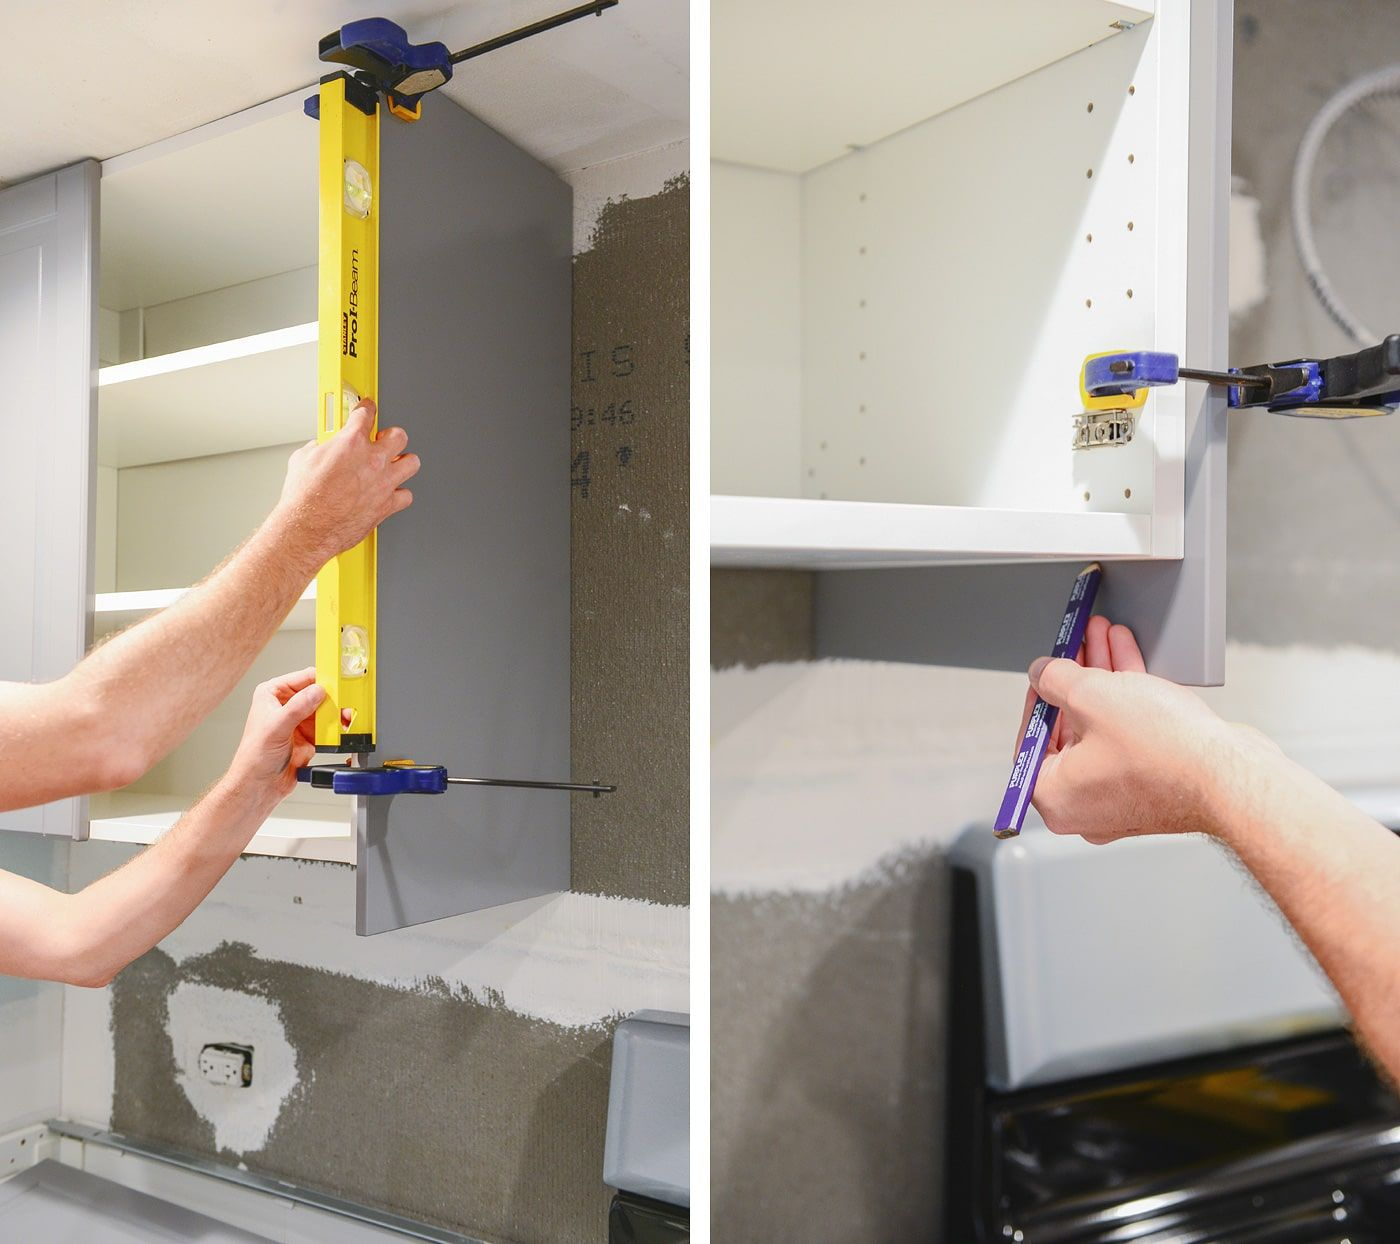 Perfecting The Imperfect In Our Ikea Kitchen Fillers Panels Toe Kicks Ikea Kitchen Kitchen Remodel Small Modern Kitchen Design